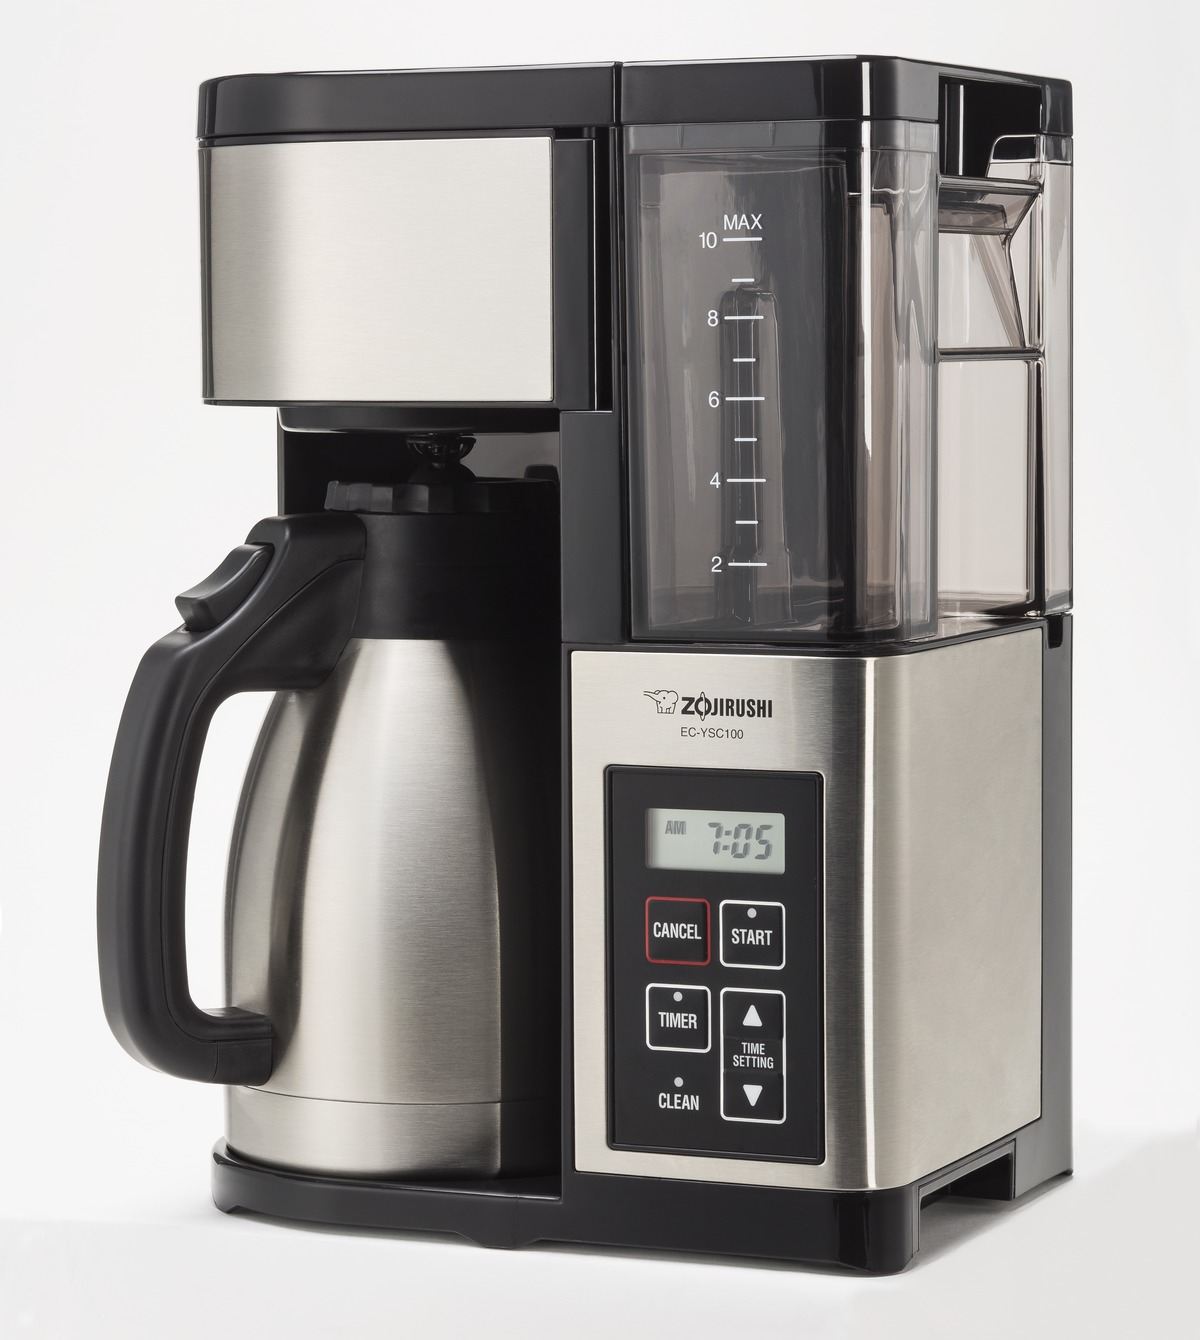 Coffeemaker wikipedia Coffee maker brands